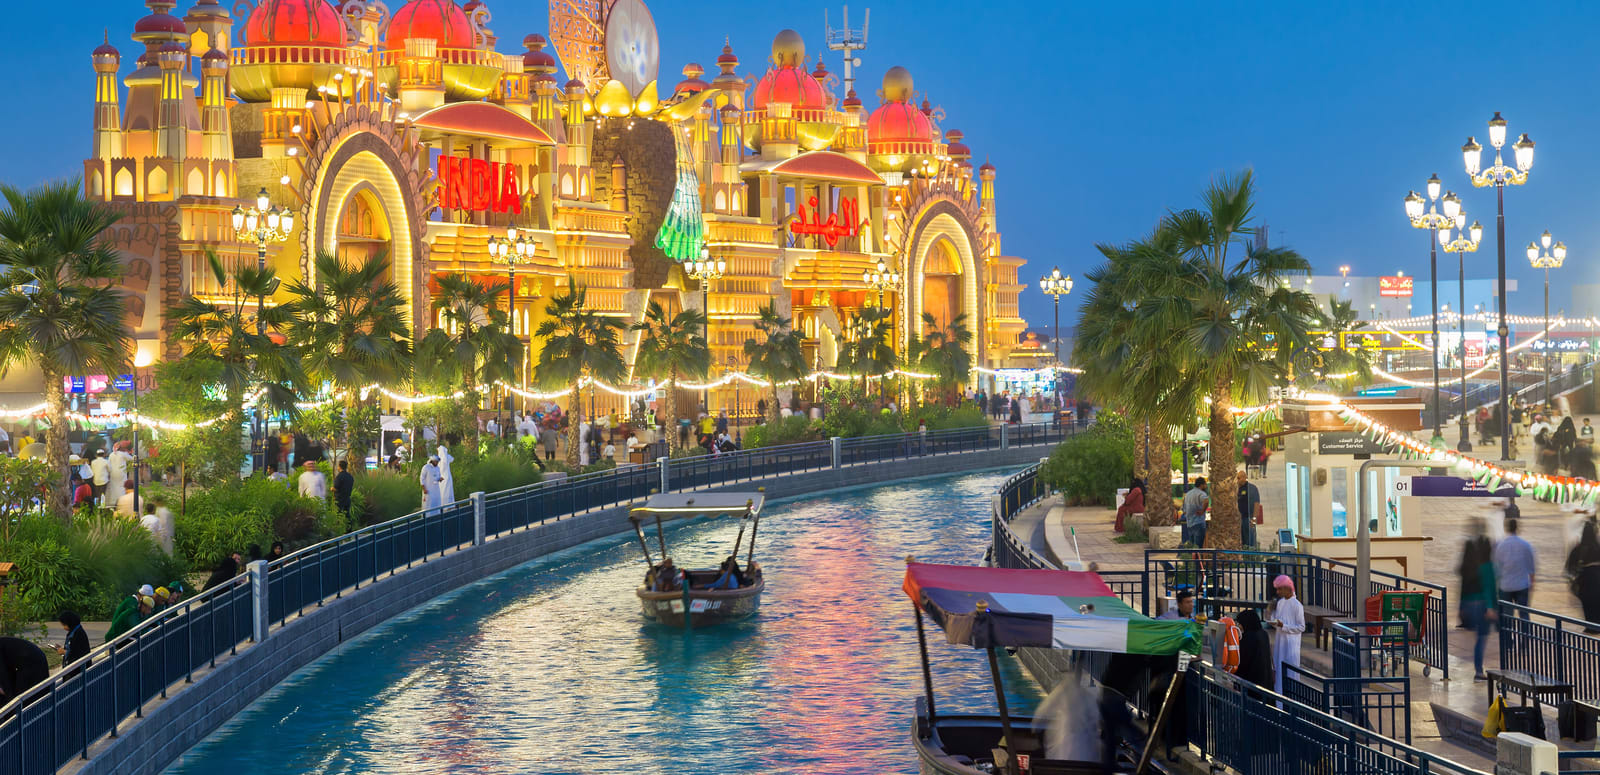 Instagrammable Places in Dubai - Global Village